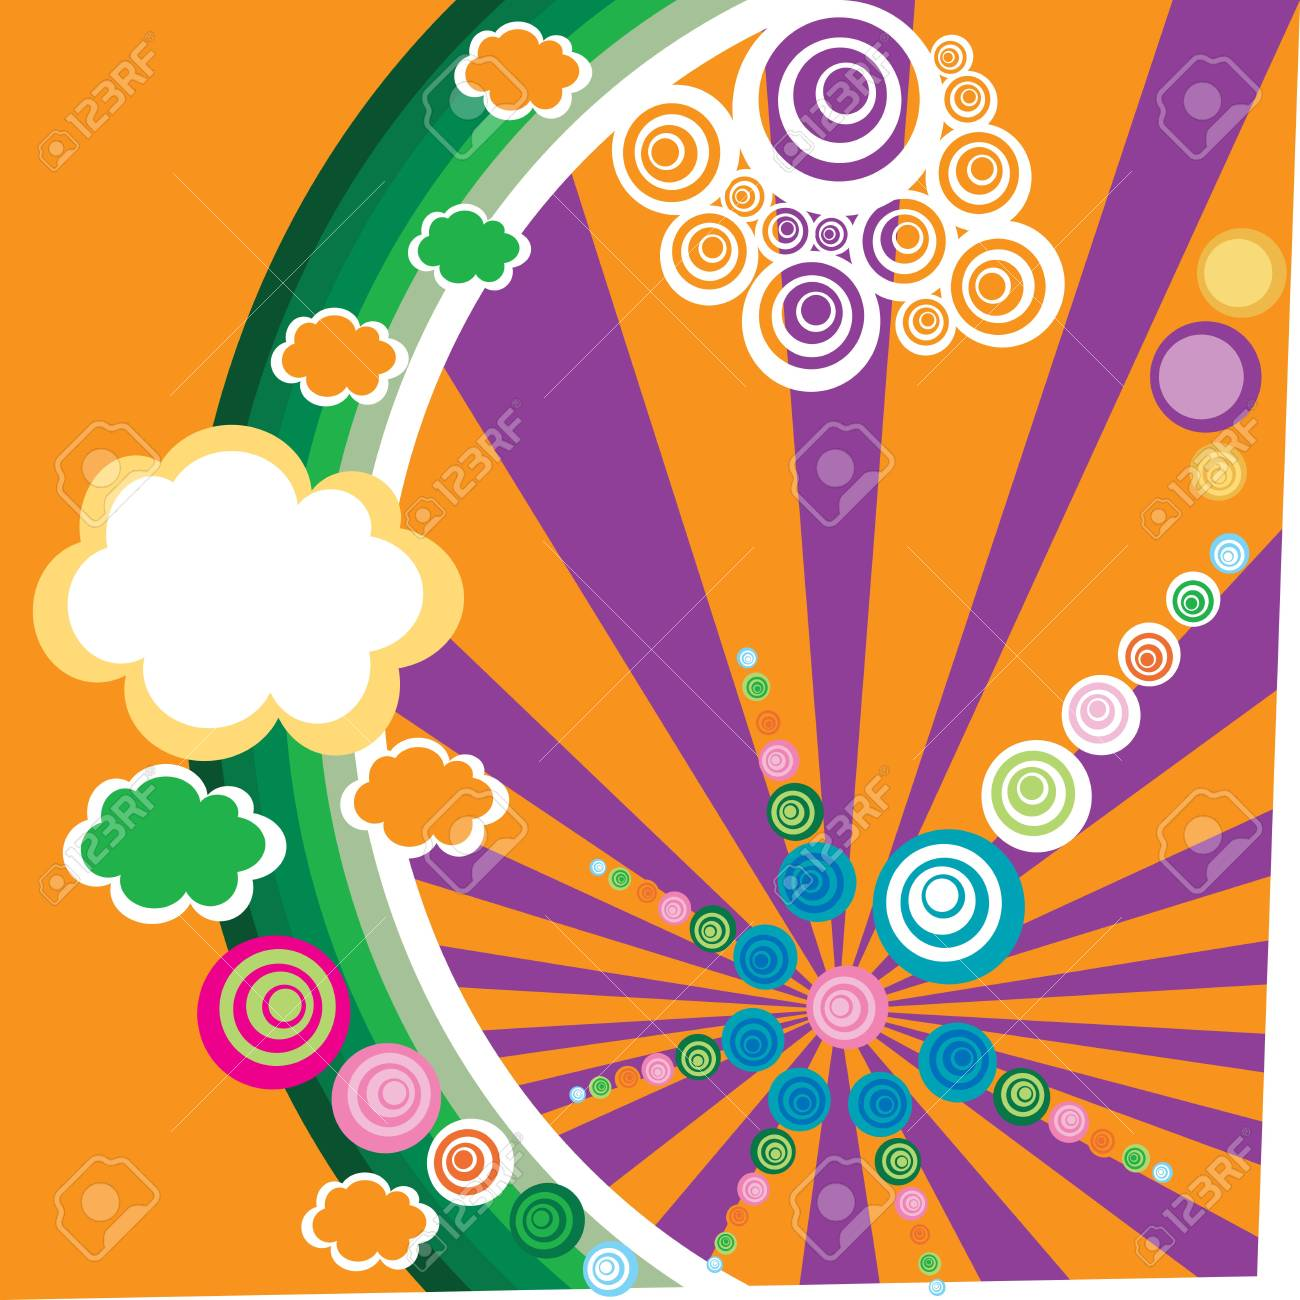 abstract design Stock Photo - 2621904